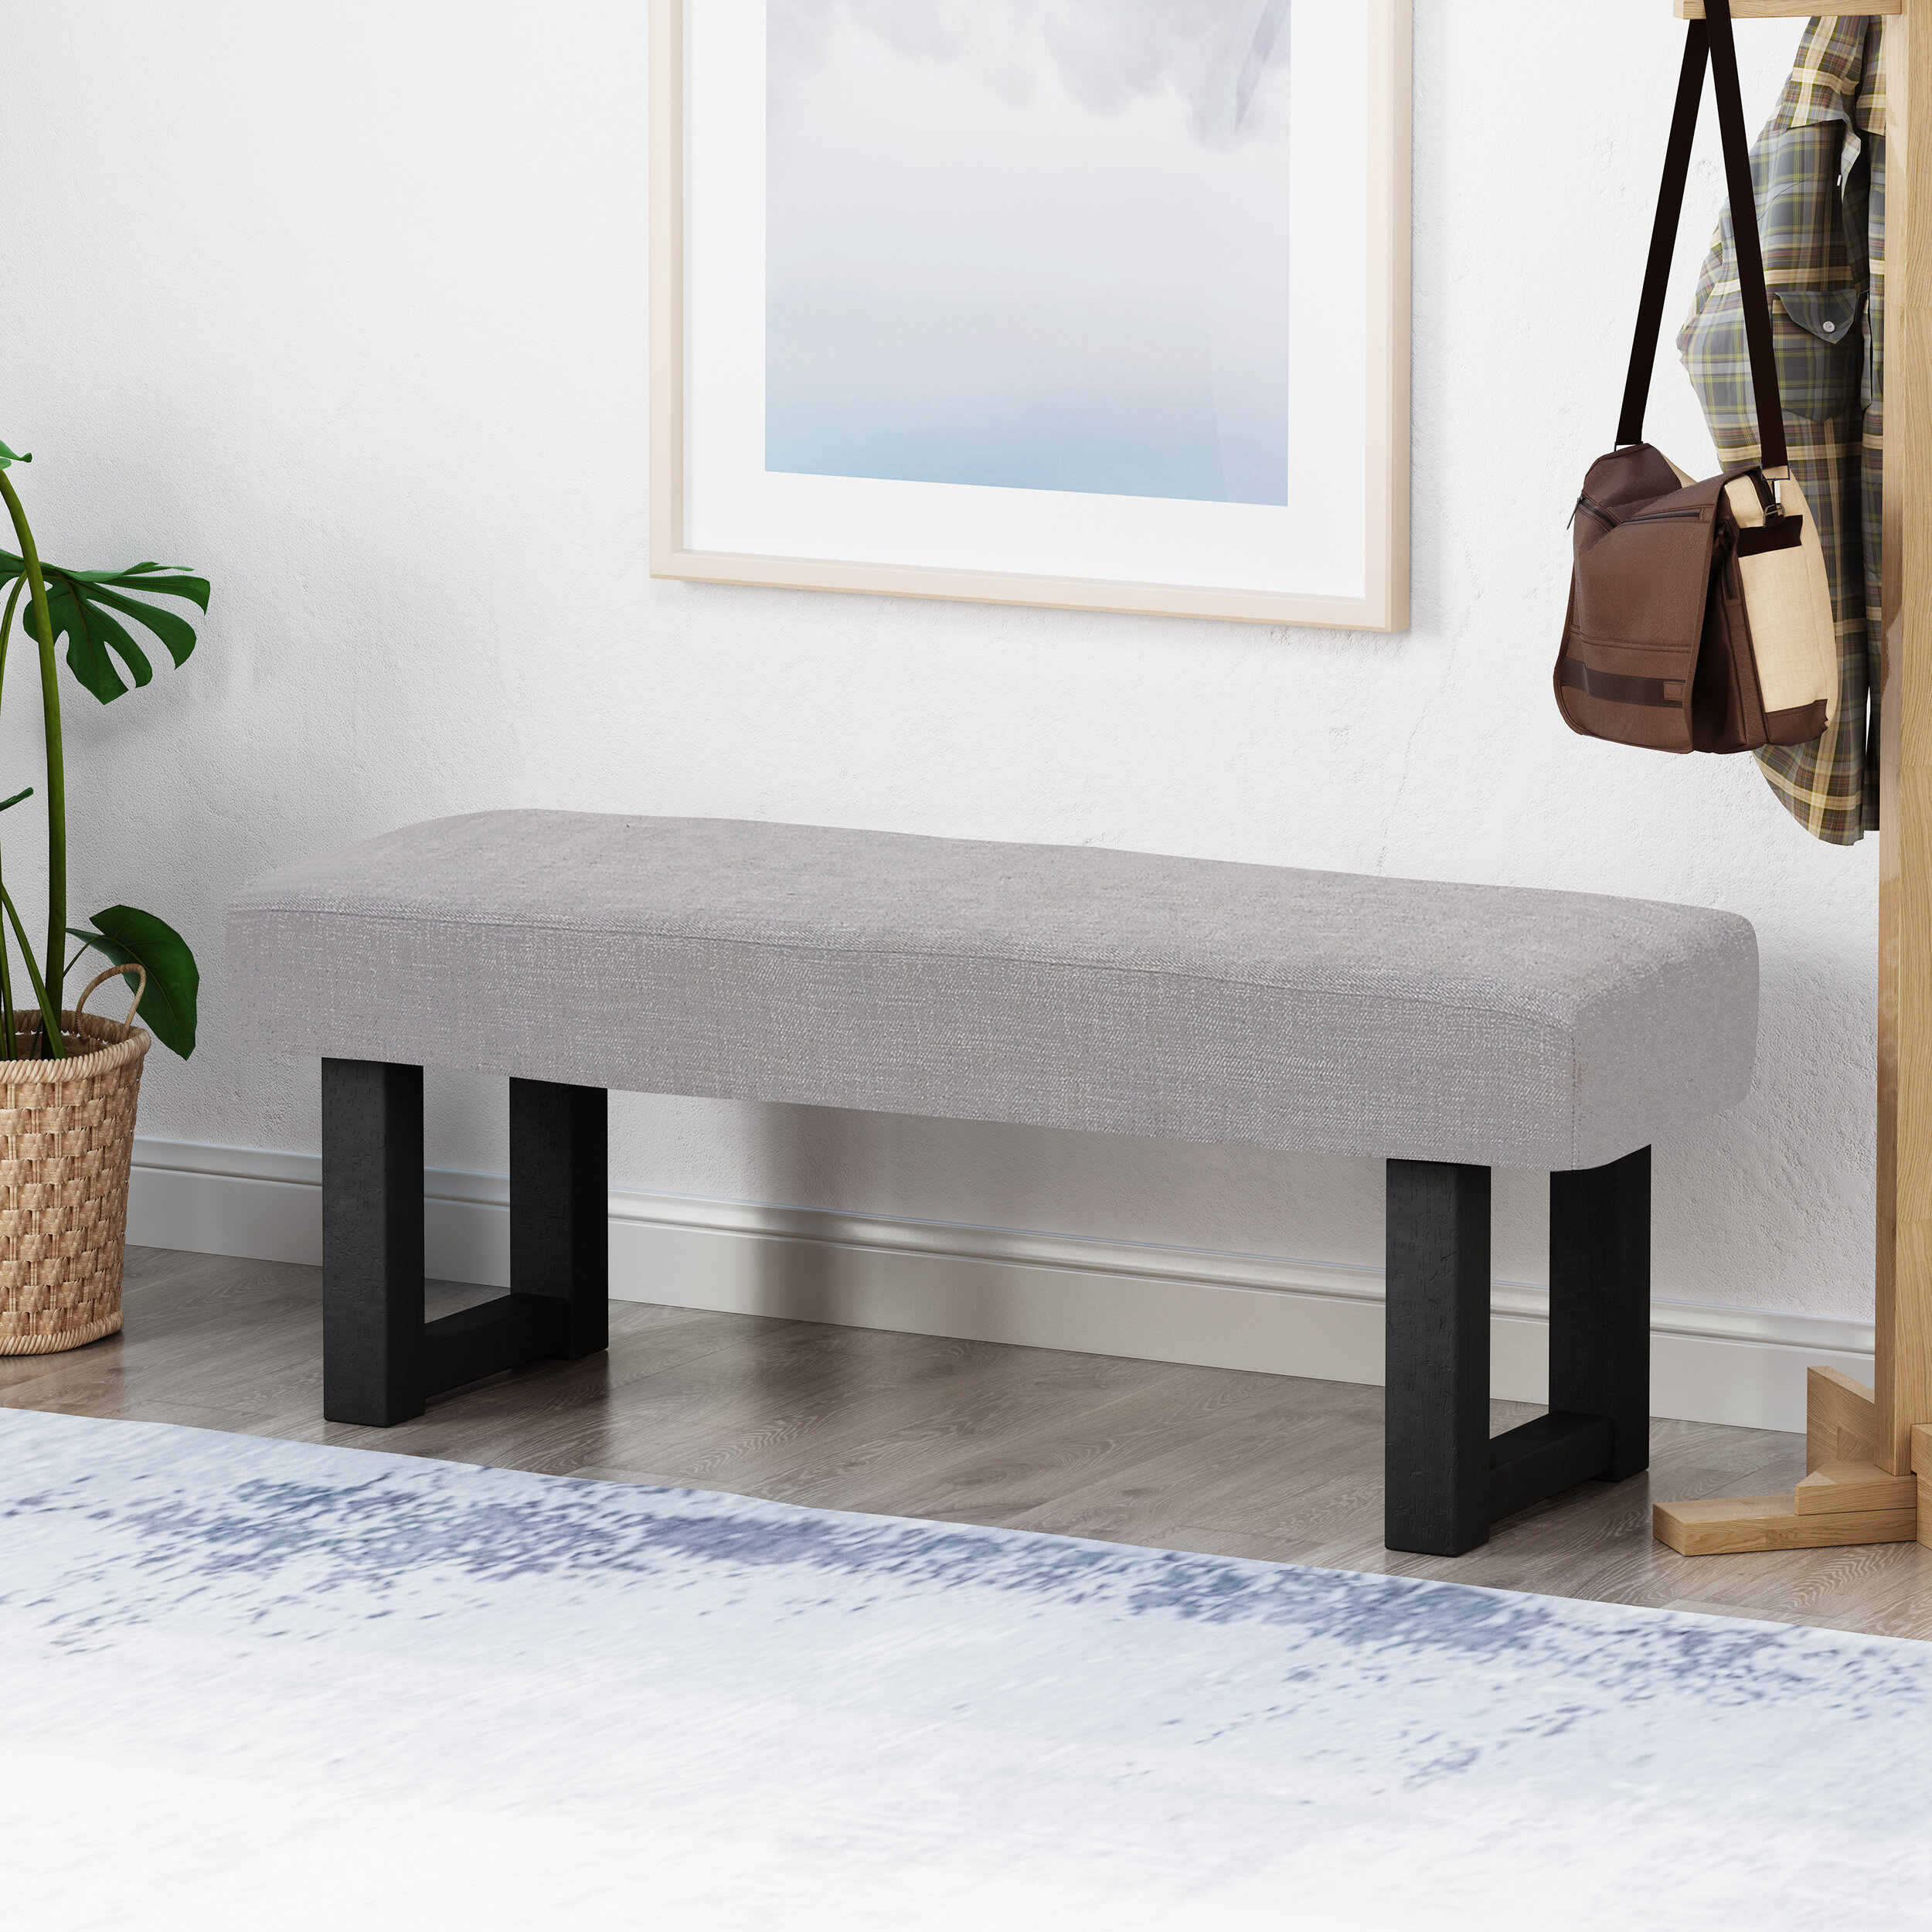 Ebern Designs Areonia Upholstered Bench Reviews Wayfair